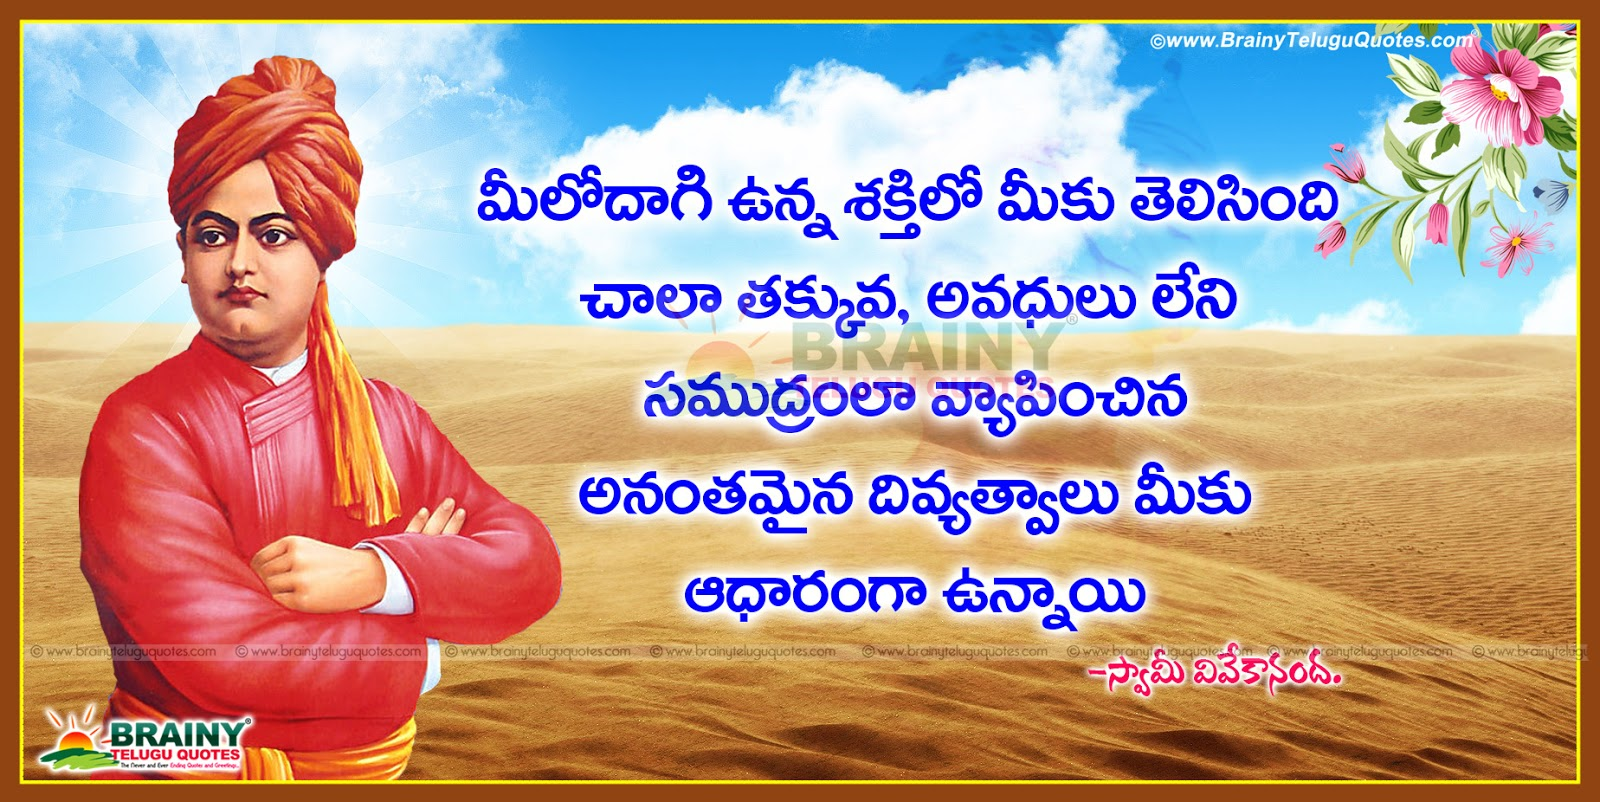 swami vivekananda quotes with images on life in teugu